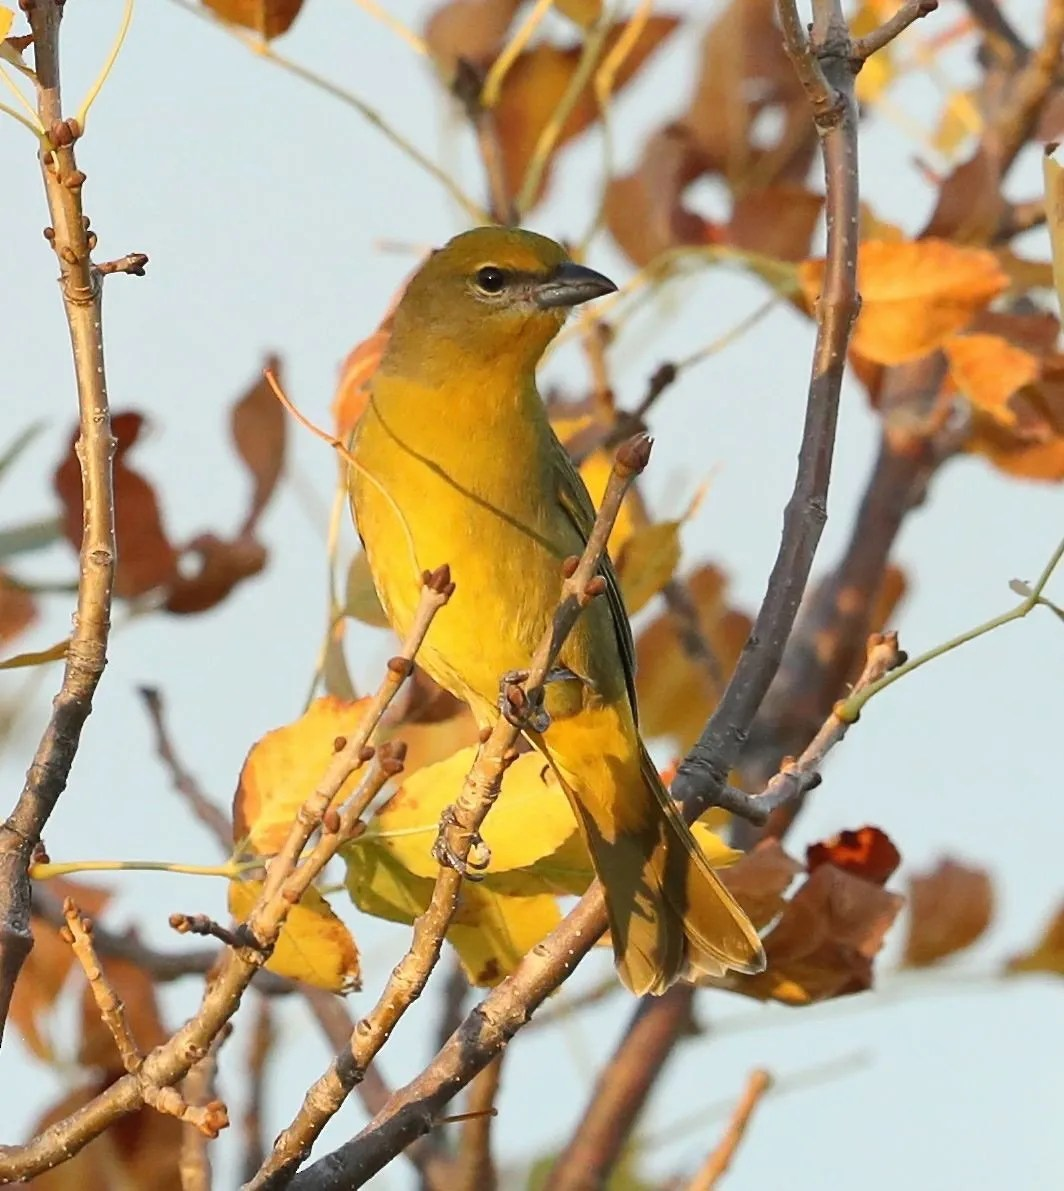 Hepatic Tanager records from Oklahoma have become more numerous in recent years; this one was found 10 Sep 2017 in Boise City, Cimarron. Photo by © Charles Lyon.